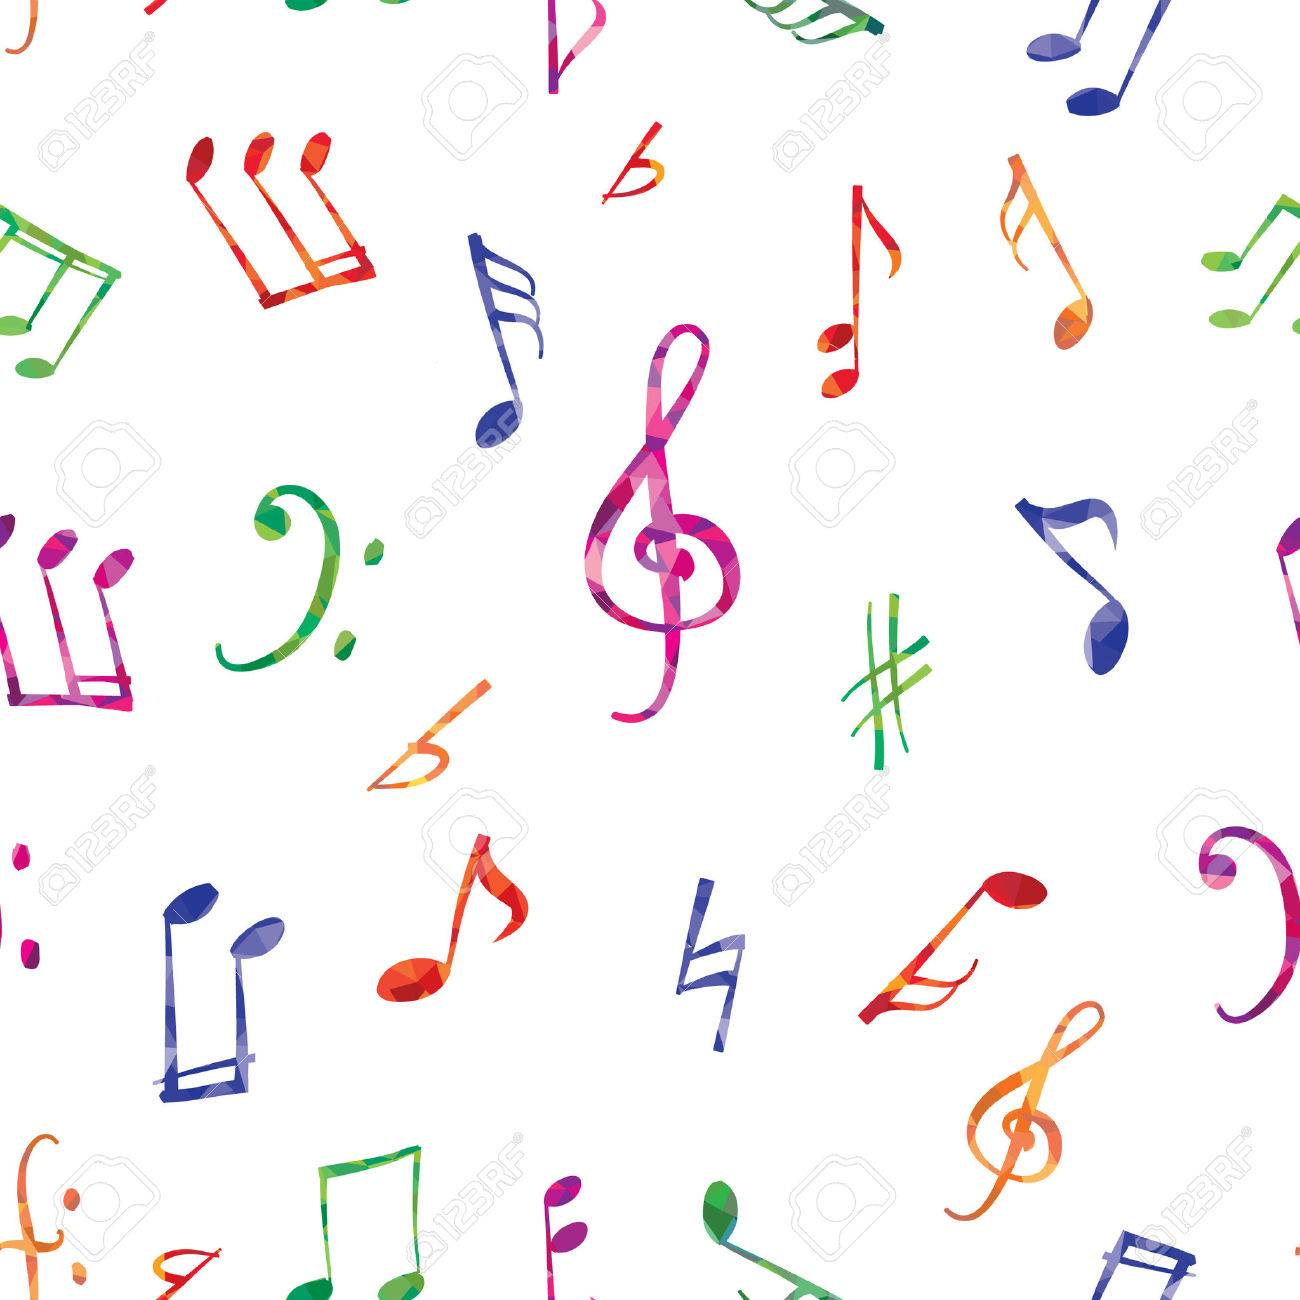 Musical pattern. Music notes and signs seamless background - 56968735